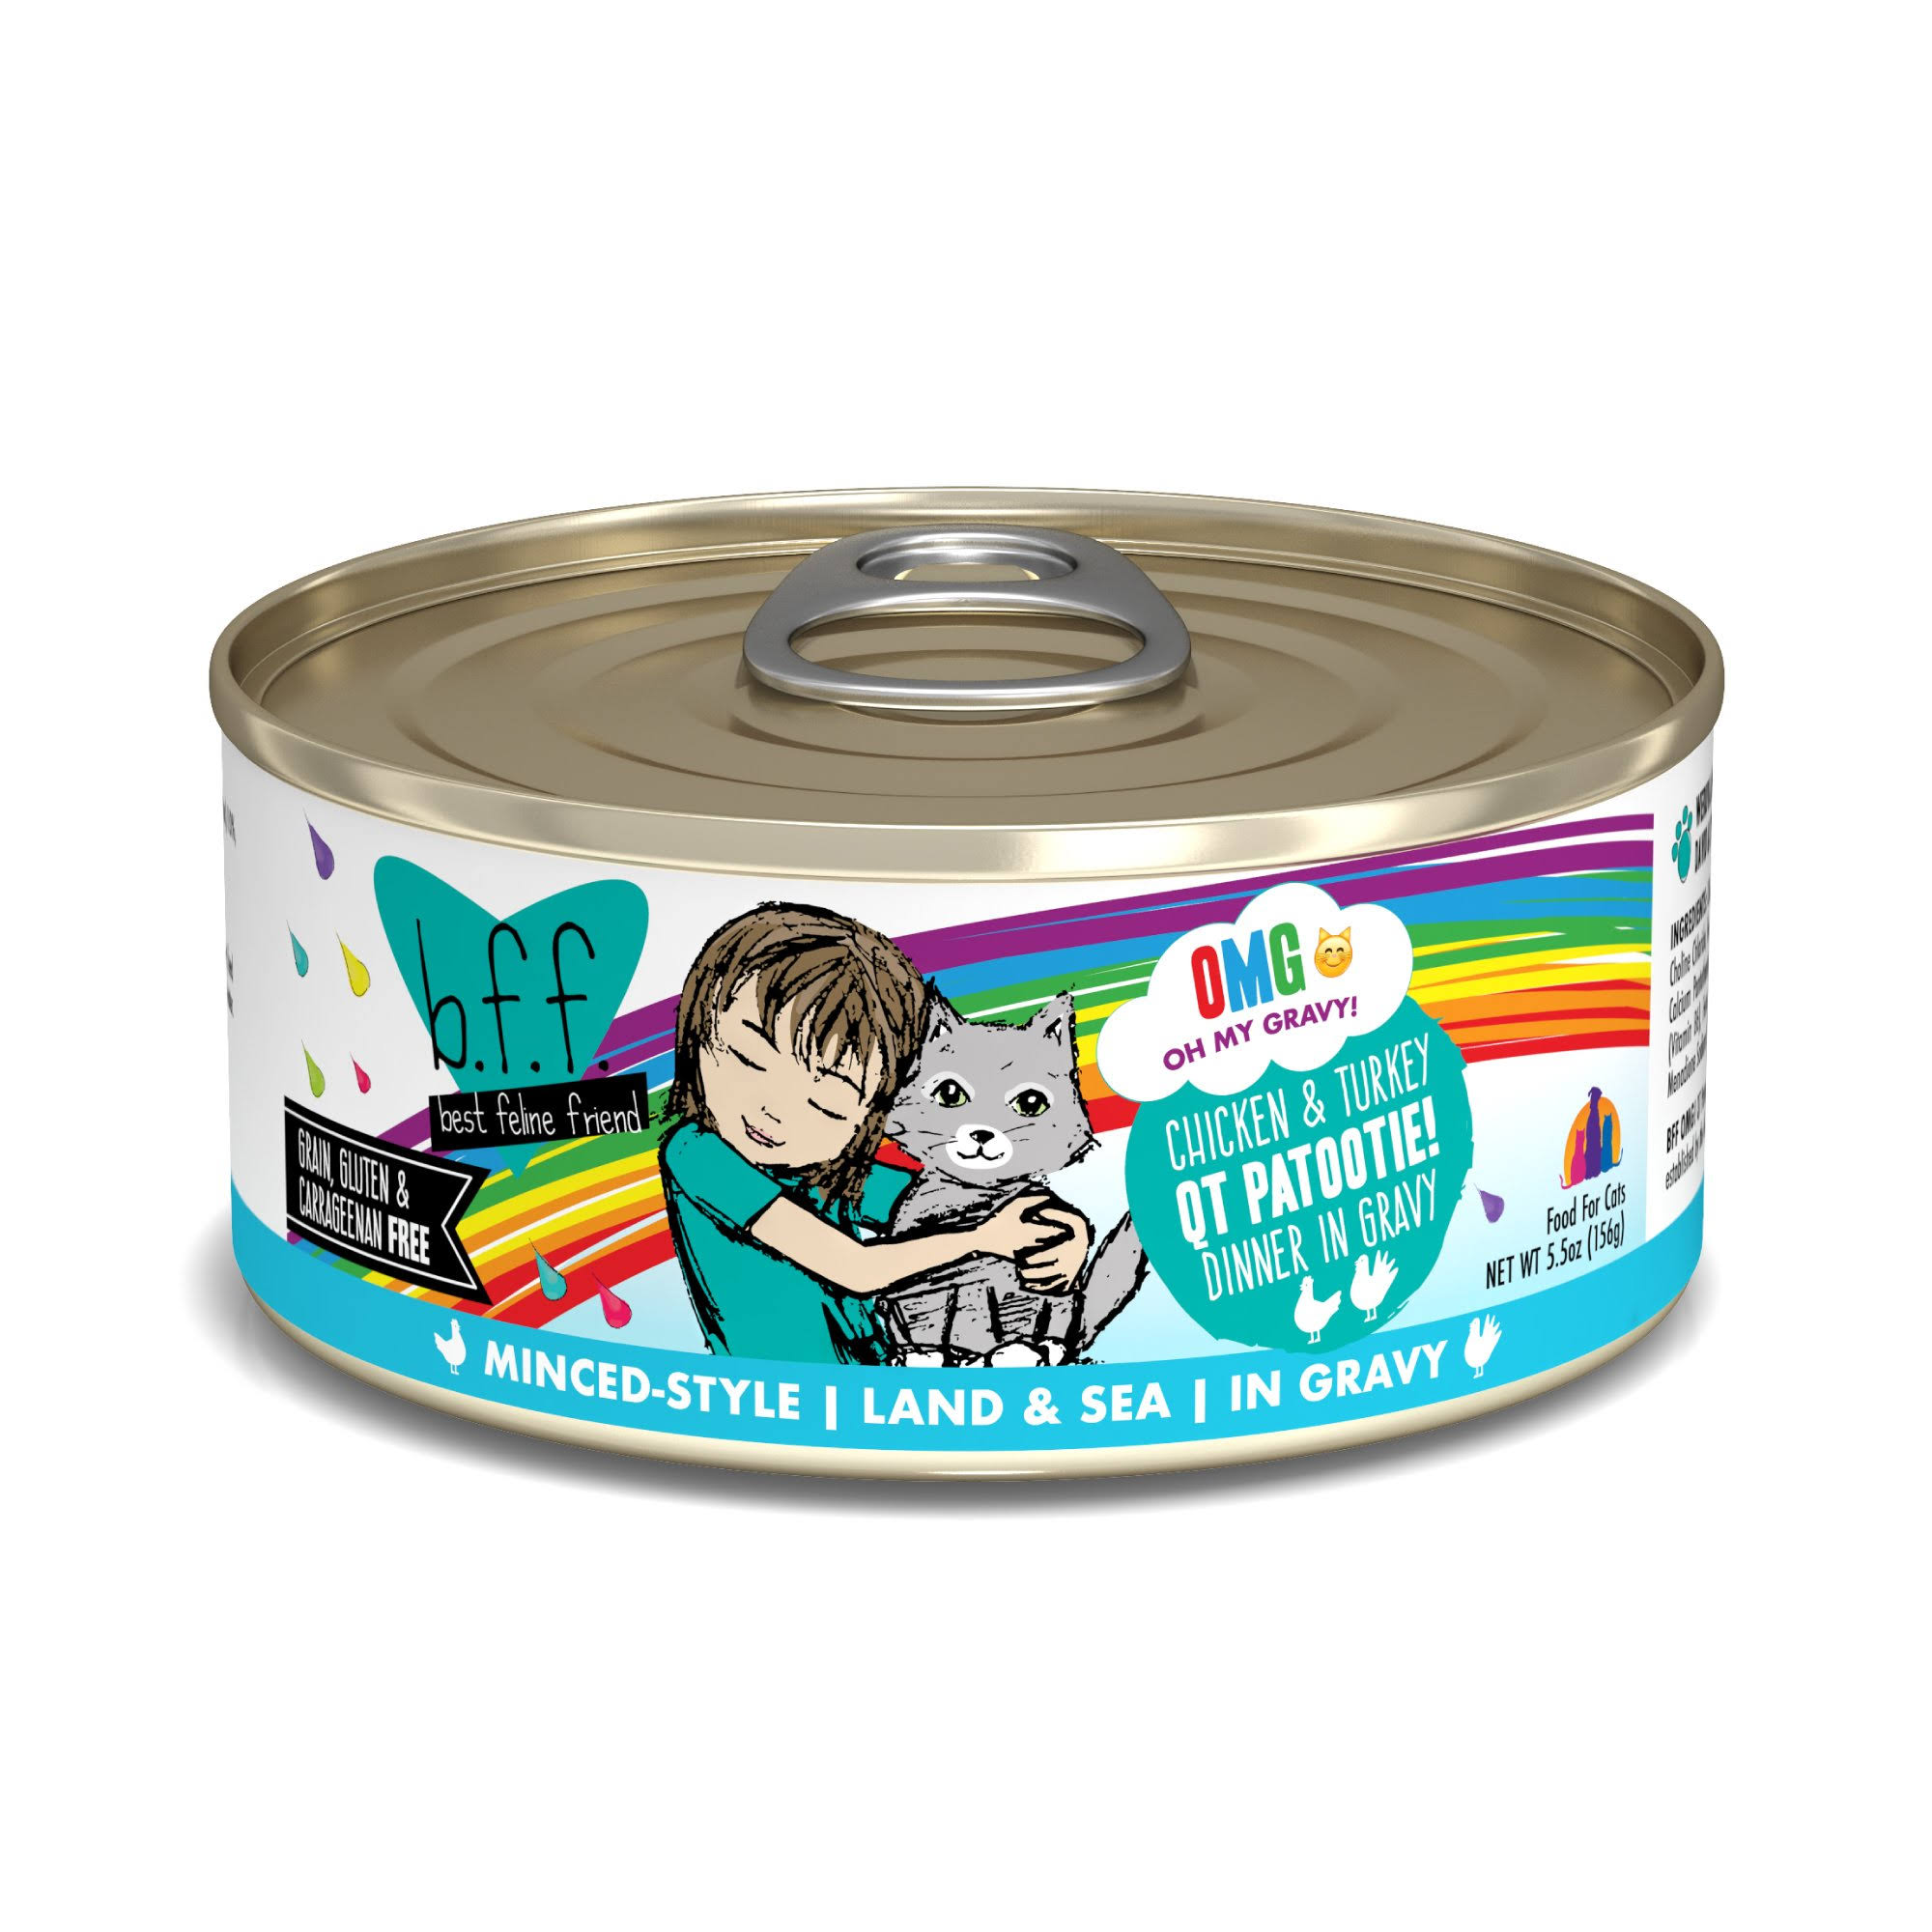 Best Feline Friend OMG! qt Patootie! Cat 5.5 oz Can